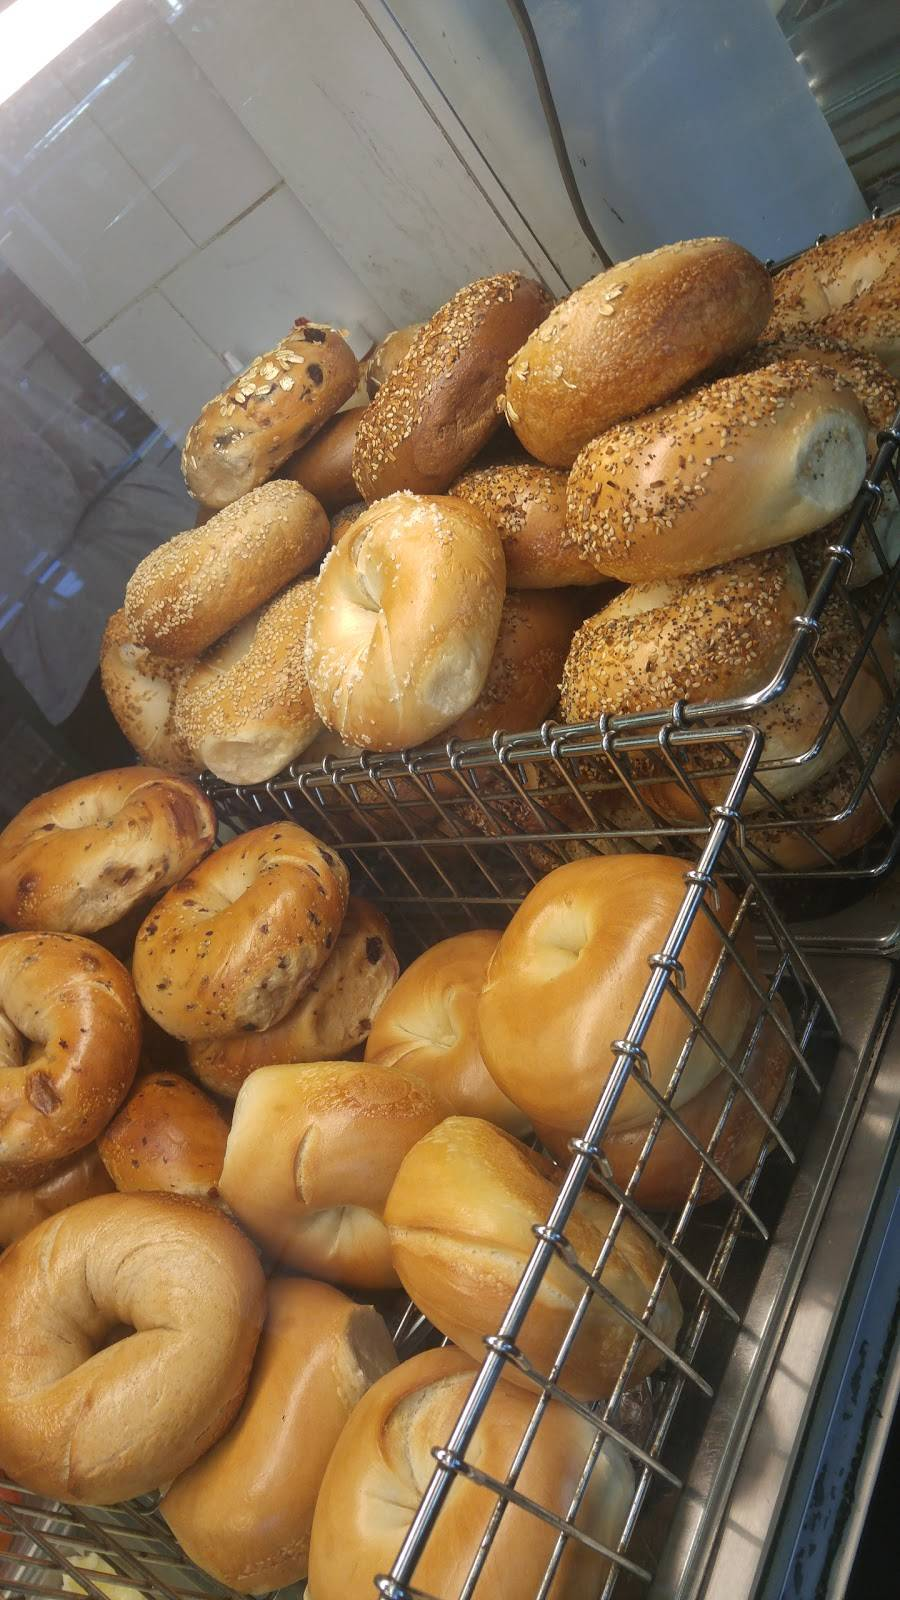 Toasted Bagels & Deli | bakery | 520 Summit Ave, Jersey City, NJ 07306, USA | 2012169499 OR +1 201-216-9499